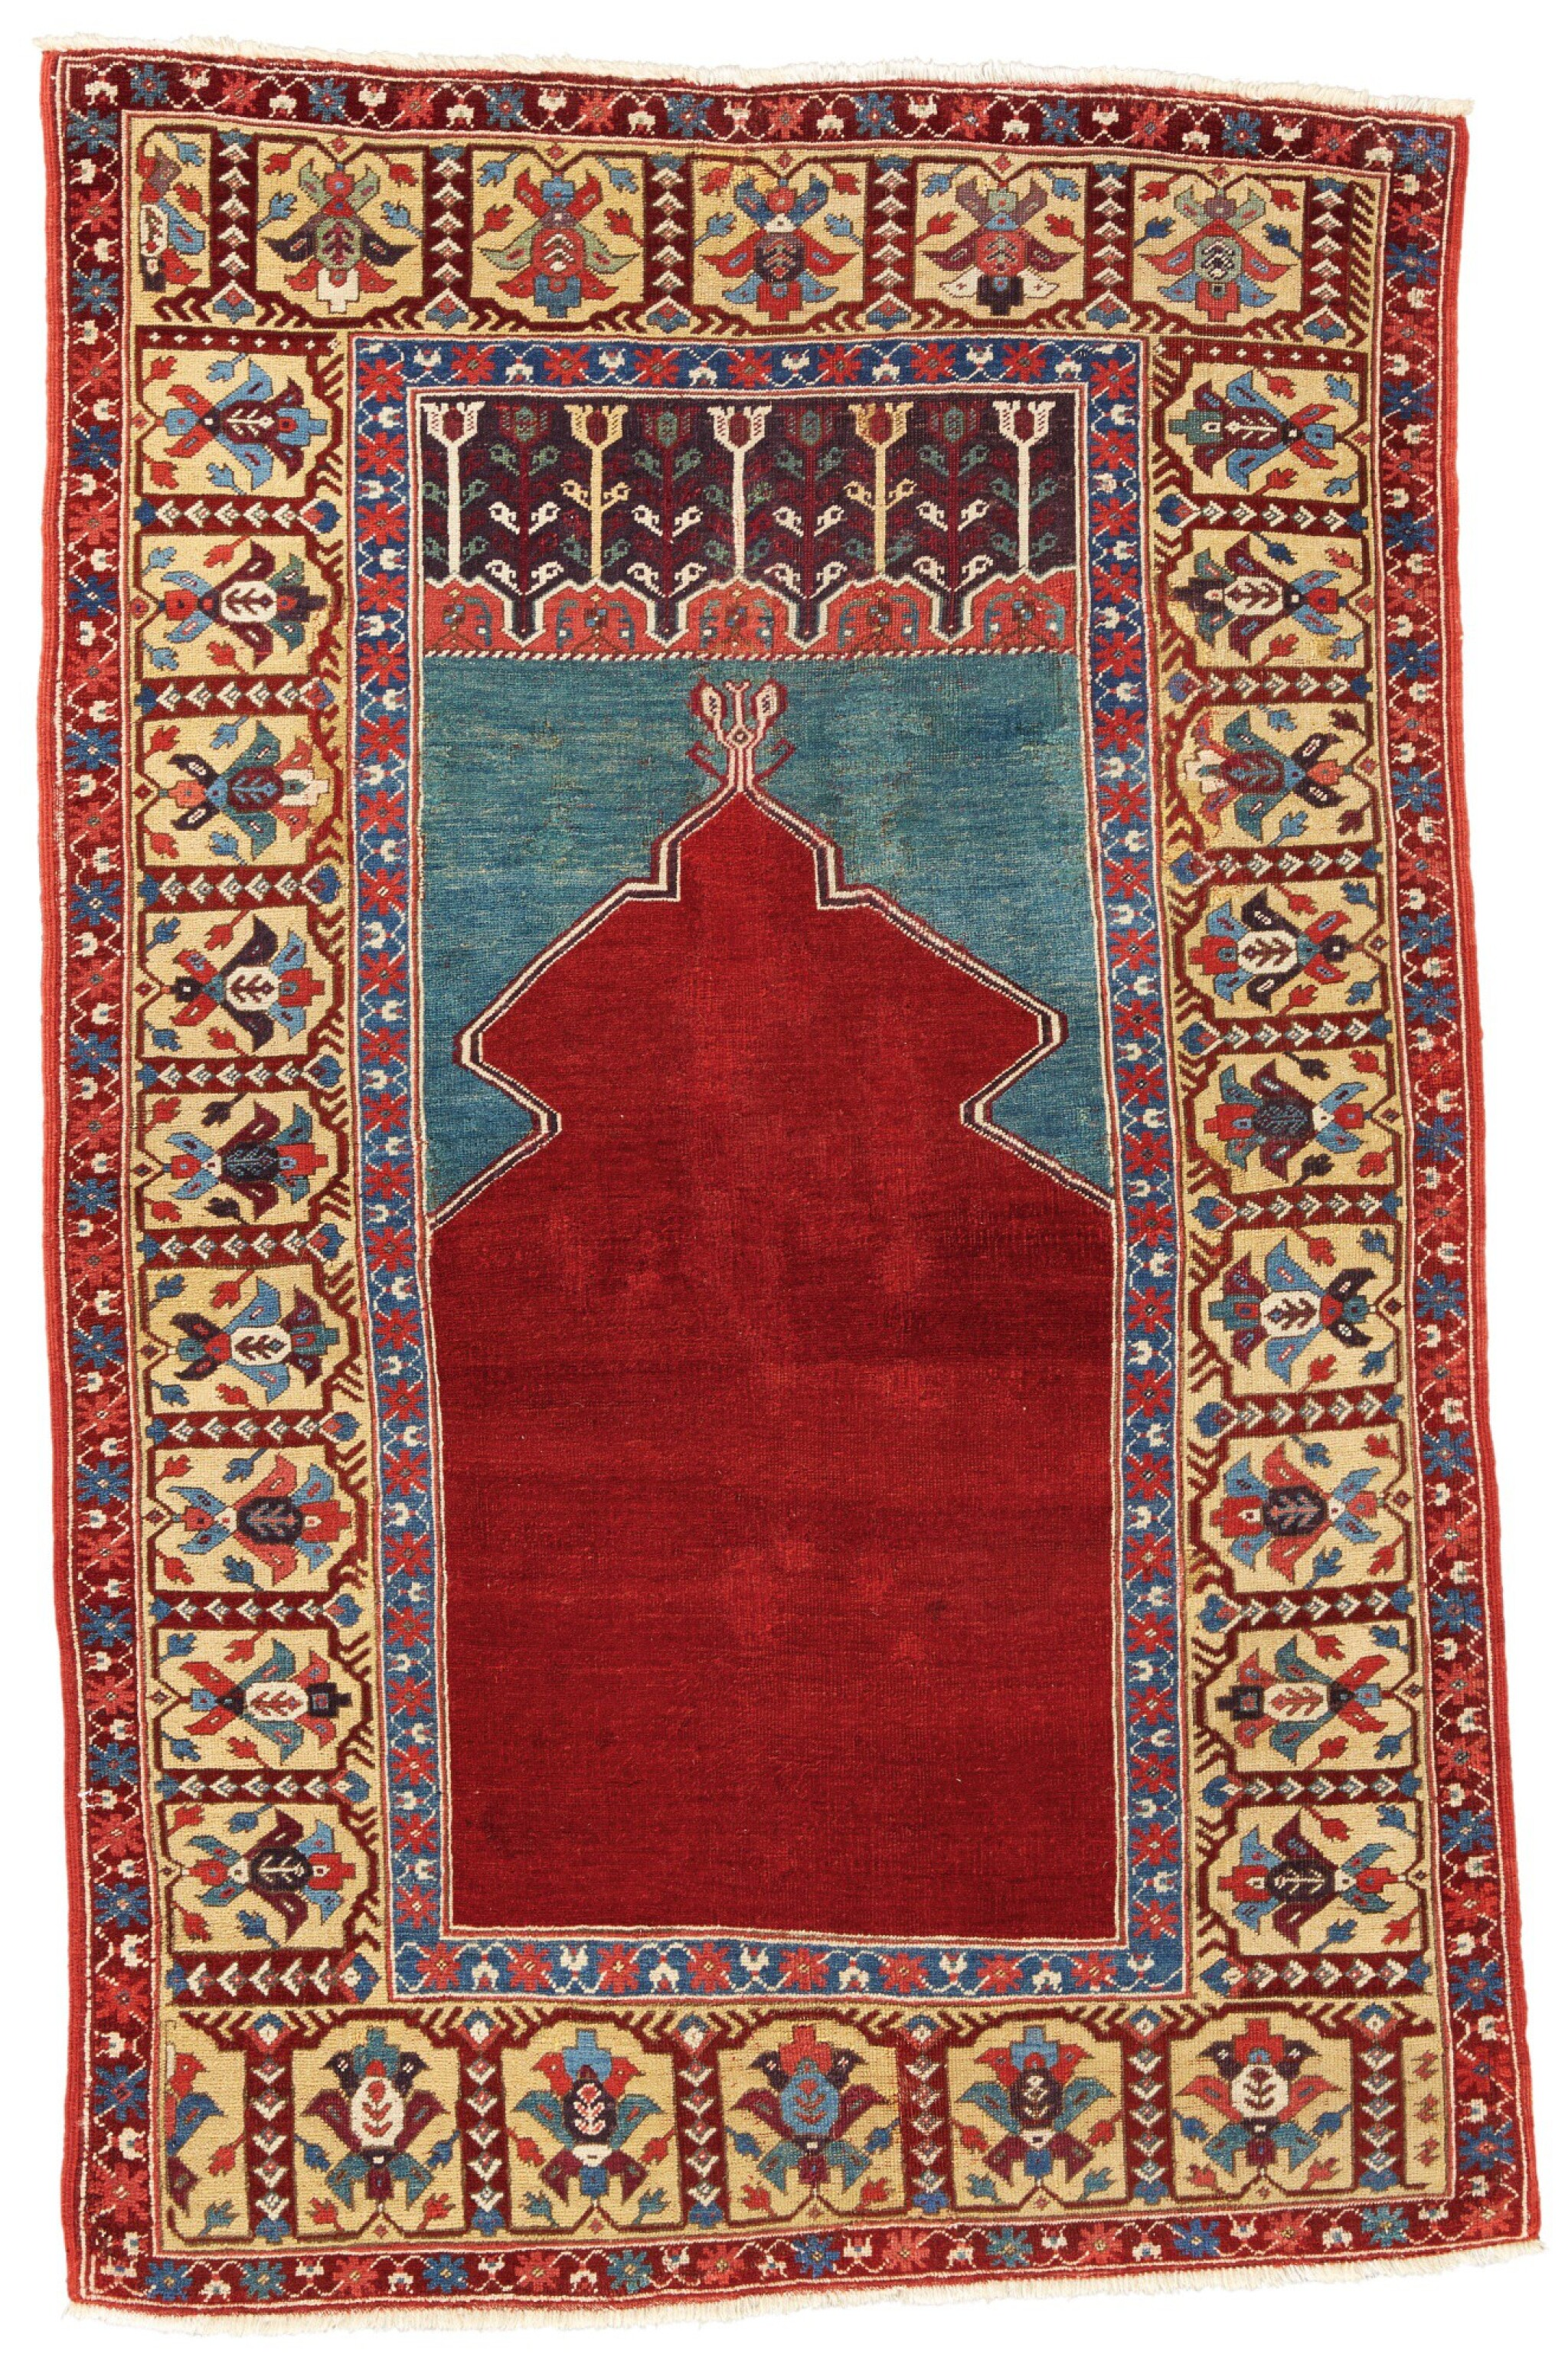 View full screen - View 1 of Lot 263. A RARE ANATOLIAN NICHE RUG, PROBABLY LADIK REGION, SOUTH-CENTRAL ANATOLIA.